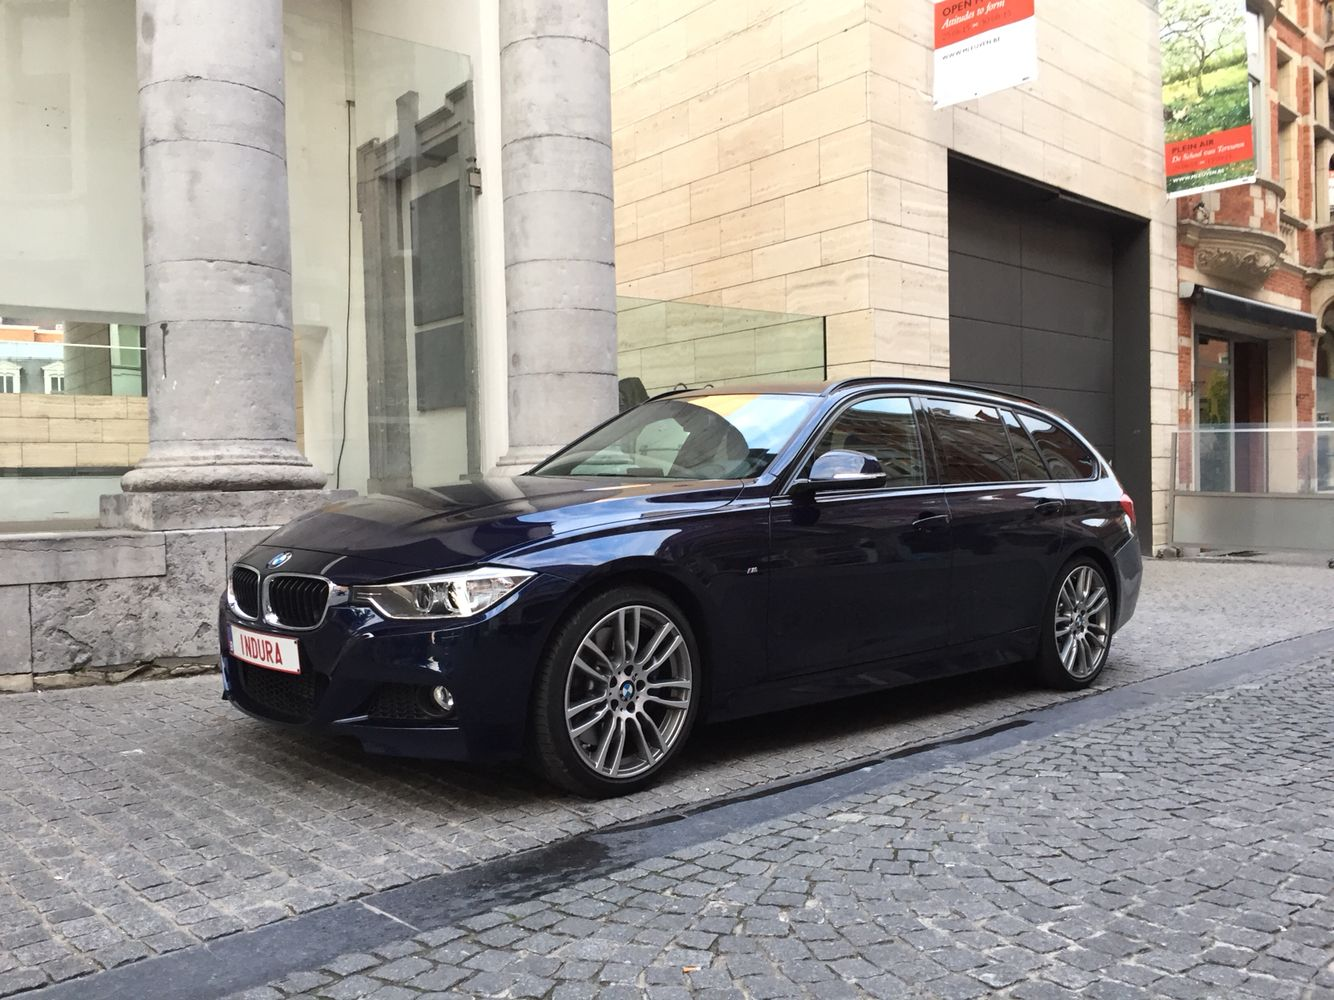 bmw f31 330d touring m sport tanzanite blue cars motorcycles pinterest bmw bmw touring. Black Bedroom Furniture Sets. Home Design Ideas